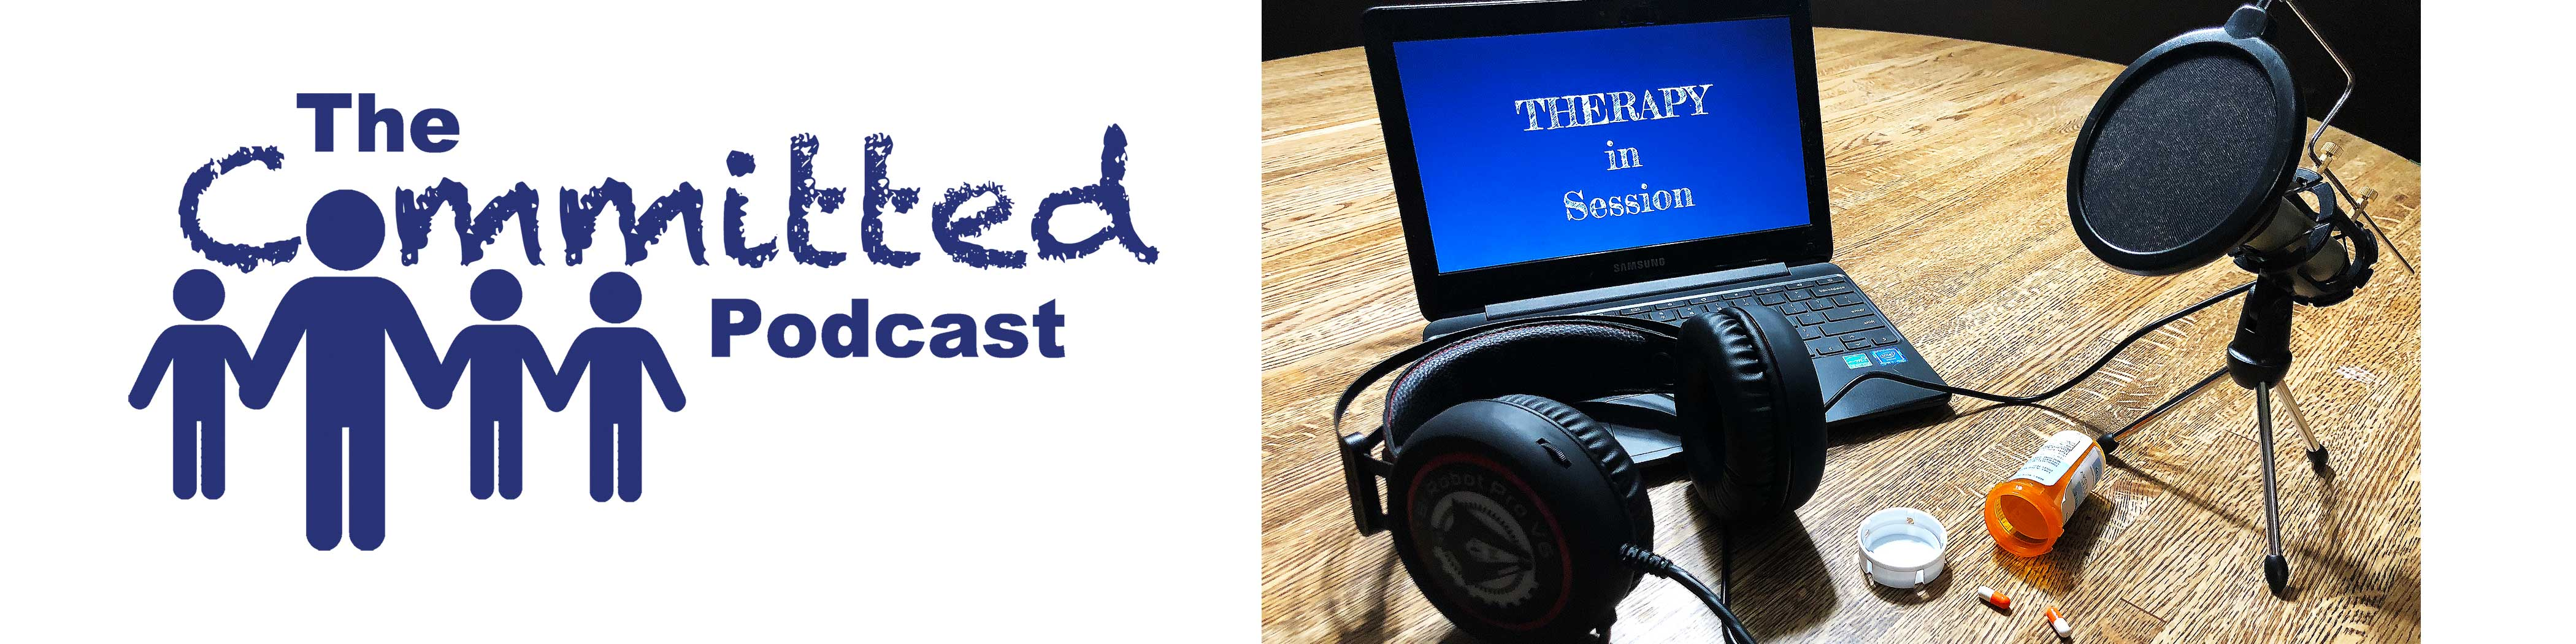 The Committed Podcast logo next to picture of headphones, microphone, laptop with screen that says